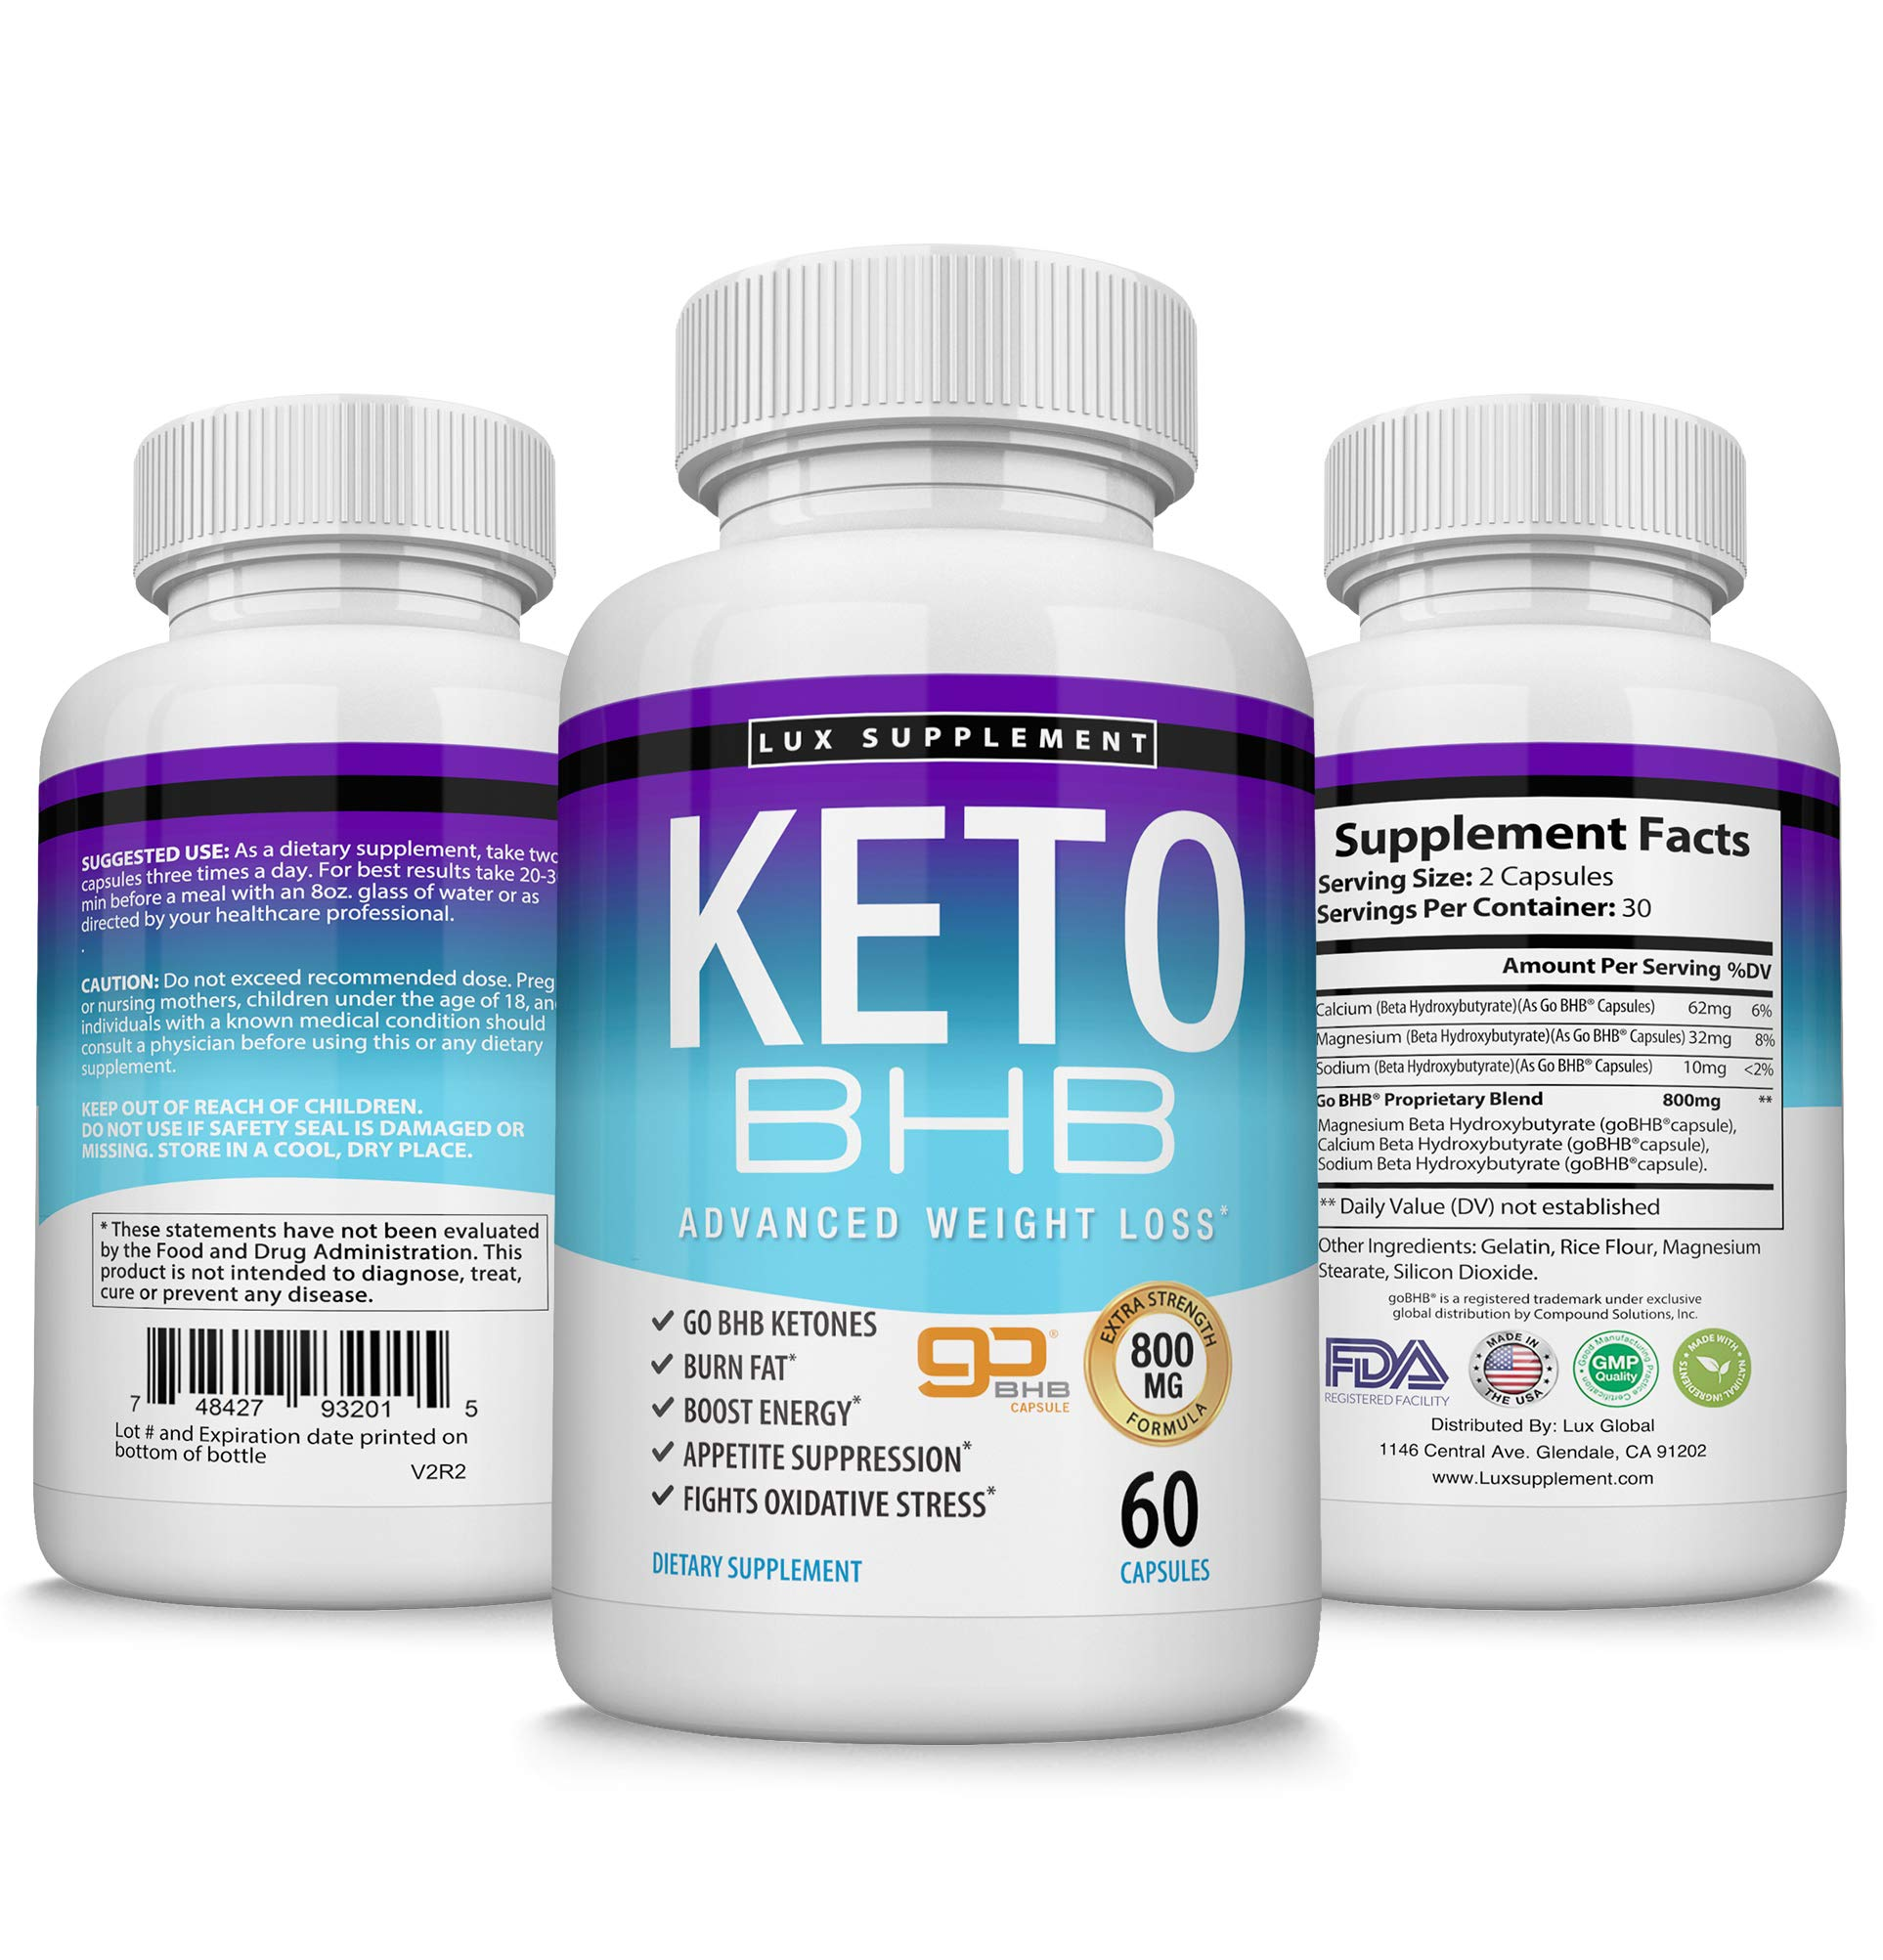 Keto Pills Advanced Weight Loss BHB Salt - Natural Ketosis Fat Burner Using Ketone & Ketogenic Diet, Boost Energy While Burning Fat, Fast & Effective Perfect for Men Women, 60 Capsules, Lux Supplement by Lux Supplement (Image #2)